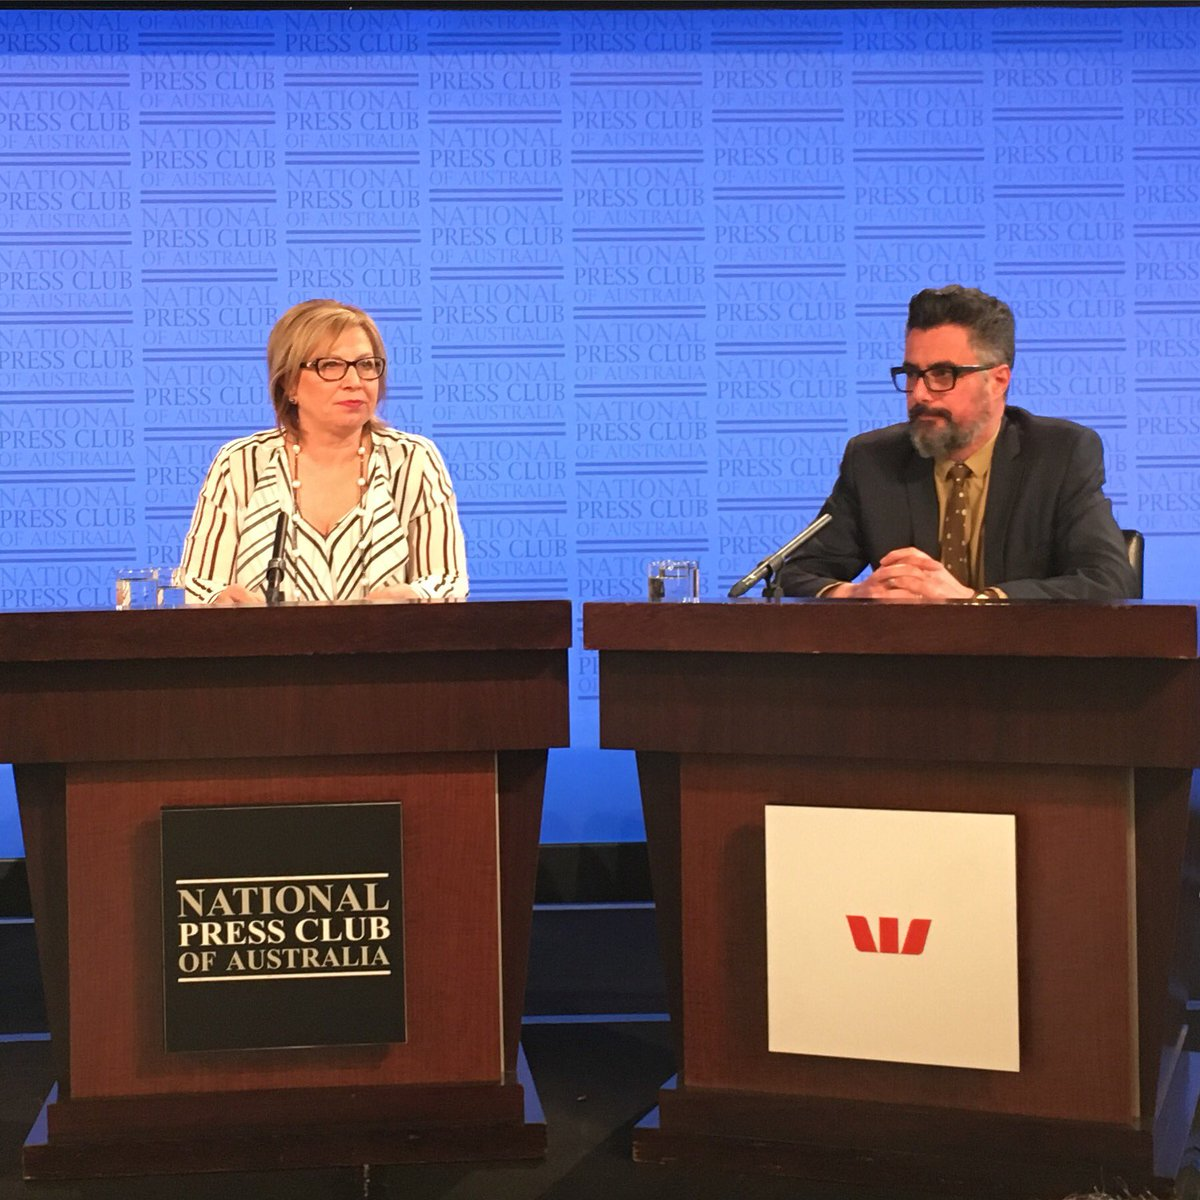 Rosie Batty and Danny Blay Addressing the #NPC for the Family Violence Election Forum. #AusVotes https://t.co/lSmQnn6nOM